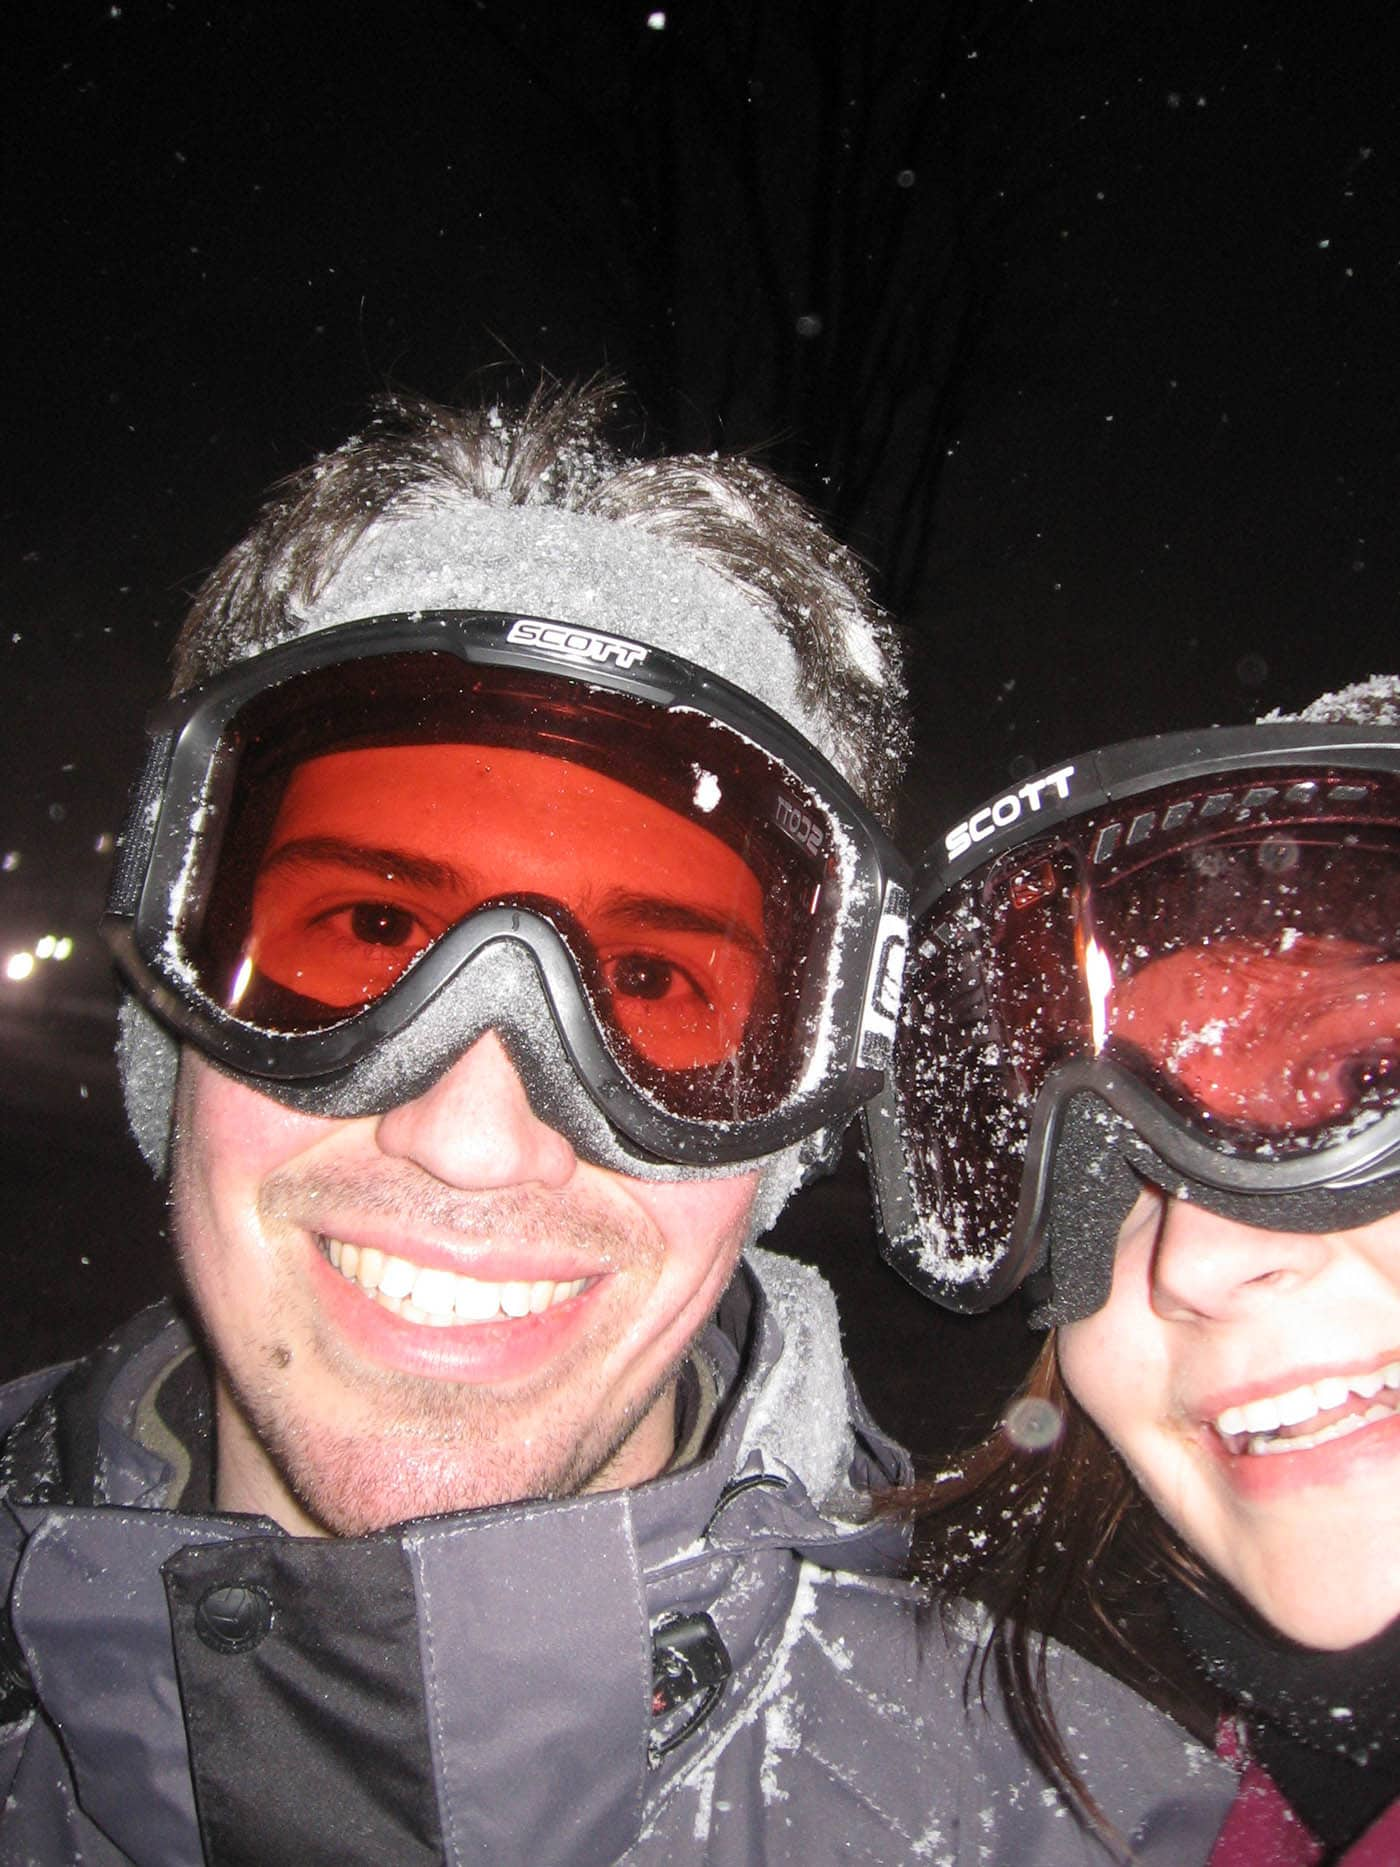 Me and Bobby on the ski slopes on our Ski Trip in Petoskey, Michigan